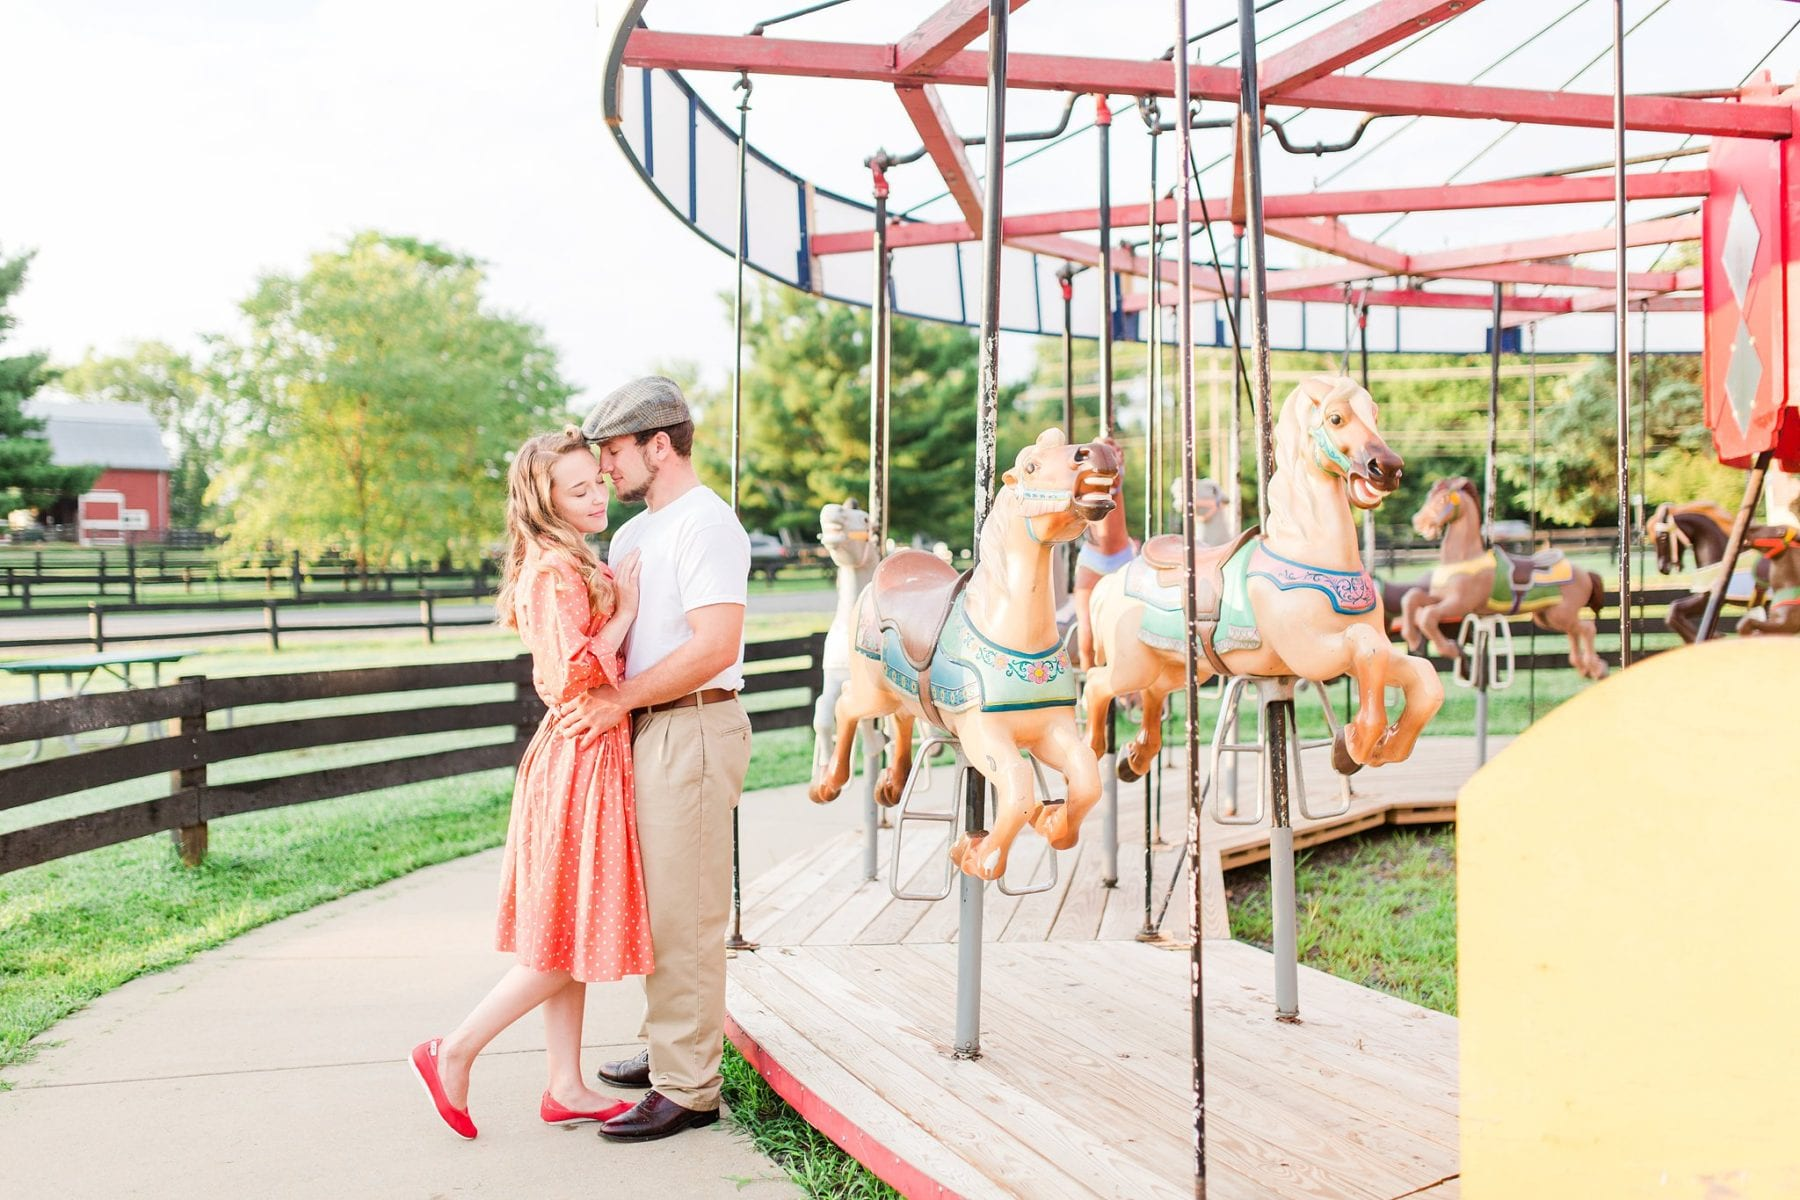 County Fair Engagement Photos Virginia Wedding Photographer Megan Kelsey Photography Samantha & Charles-70.JPG